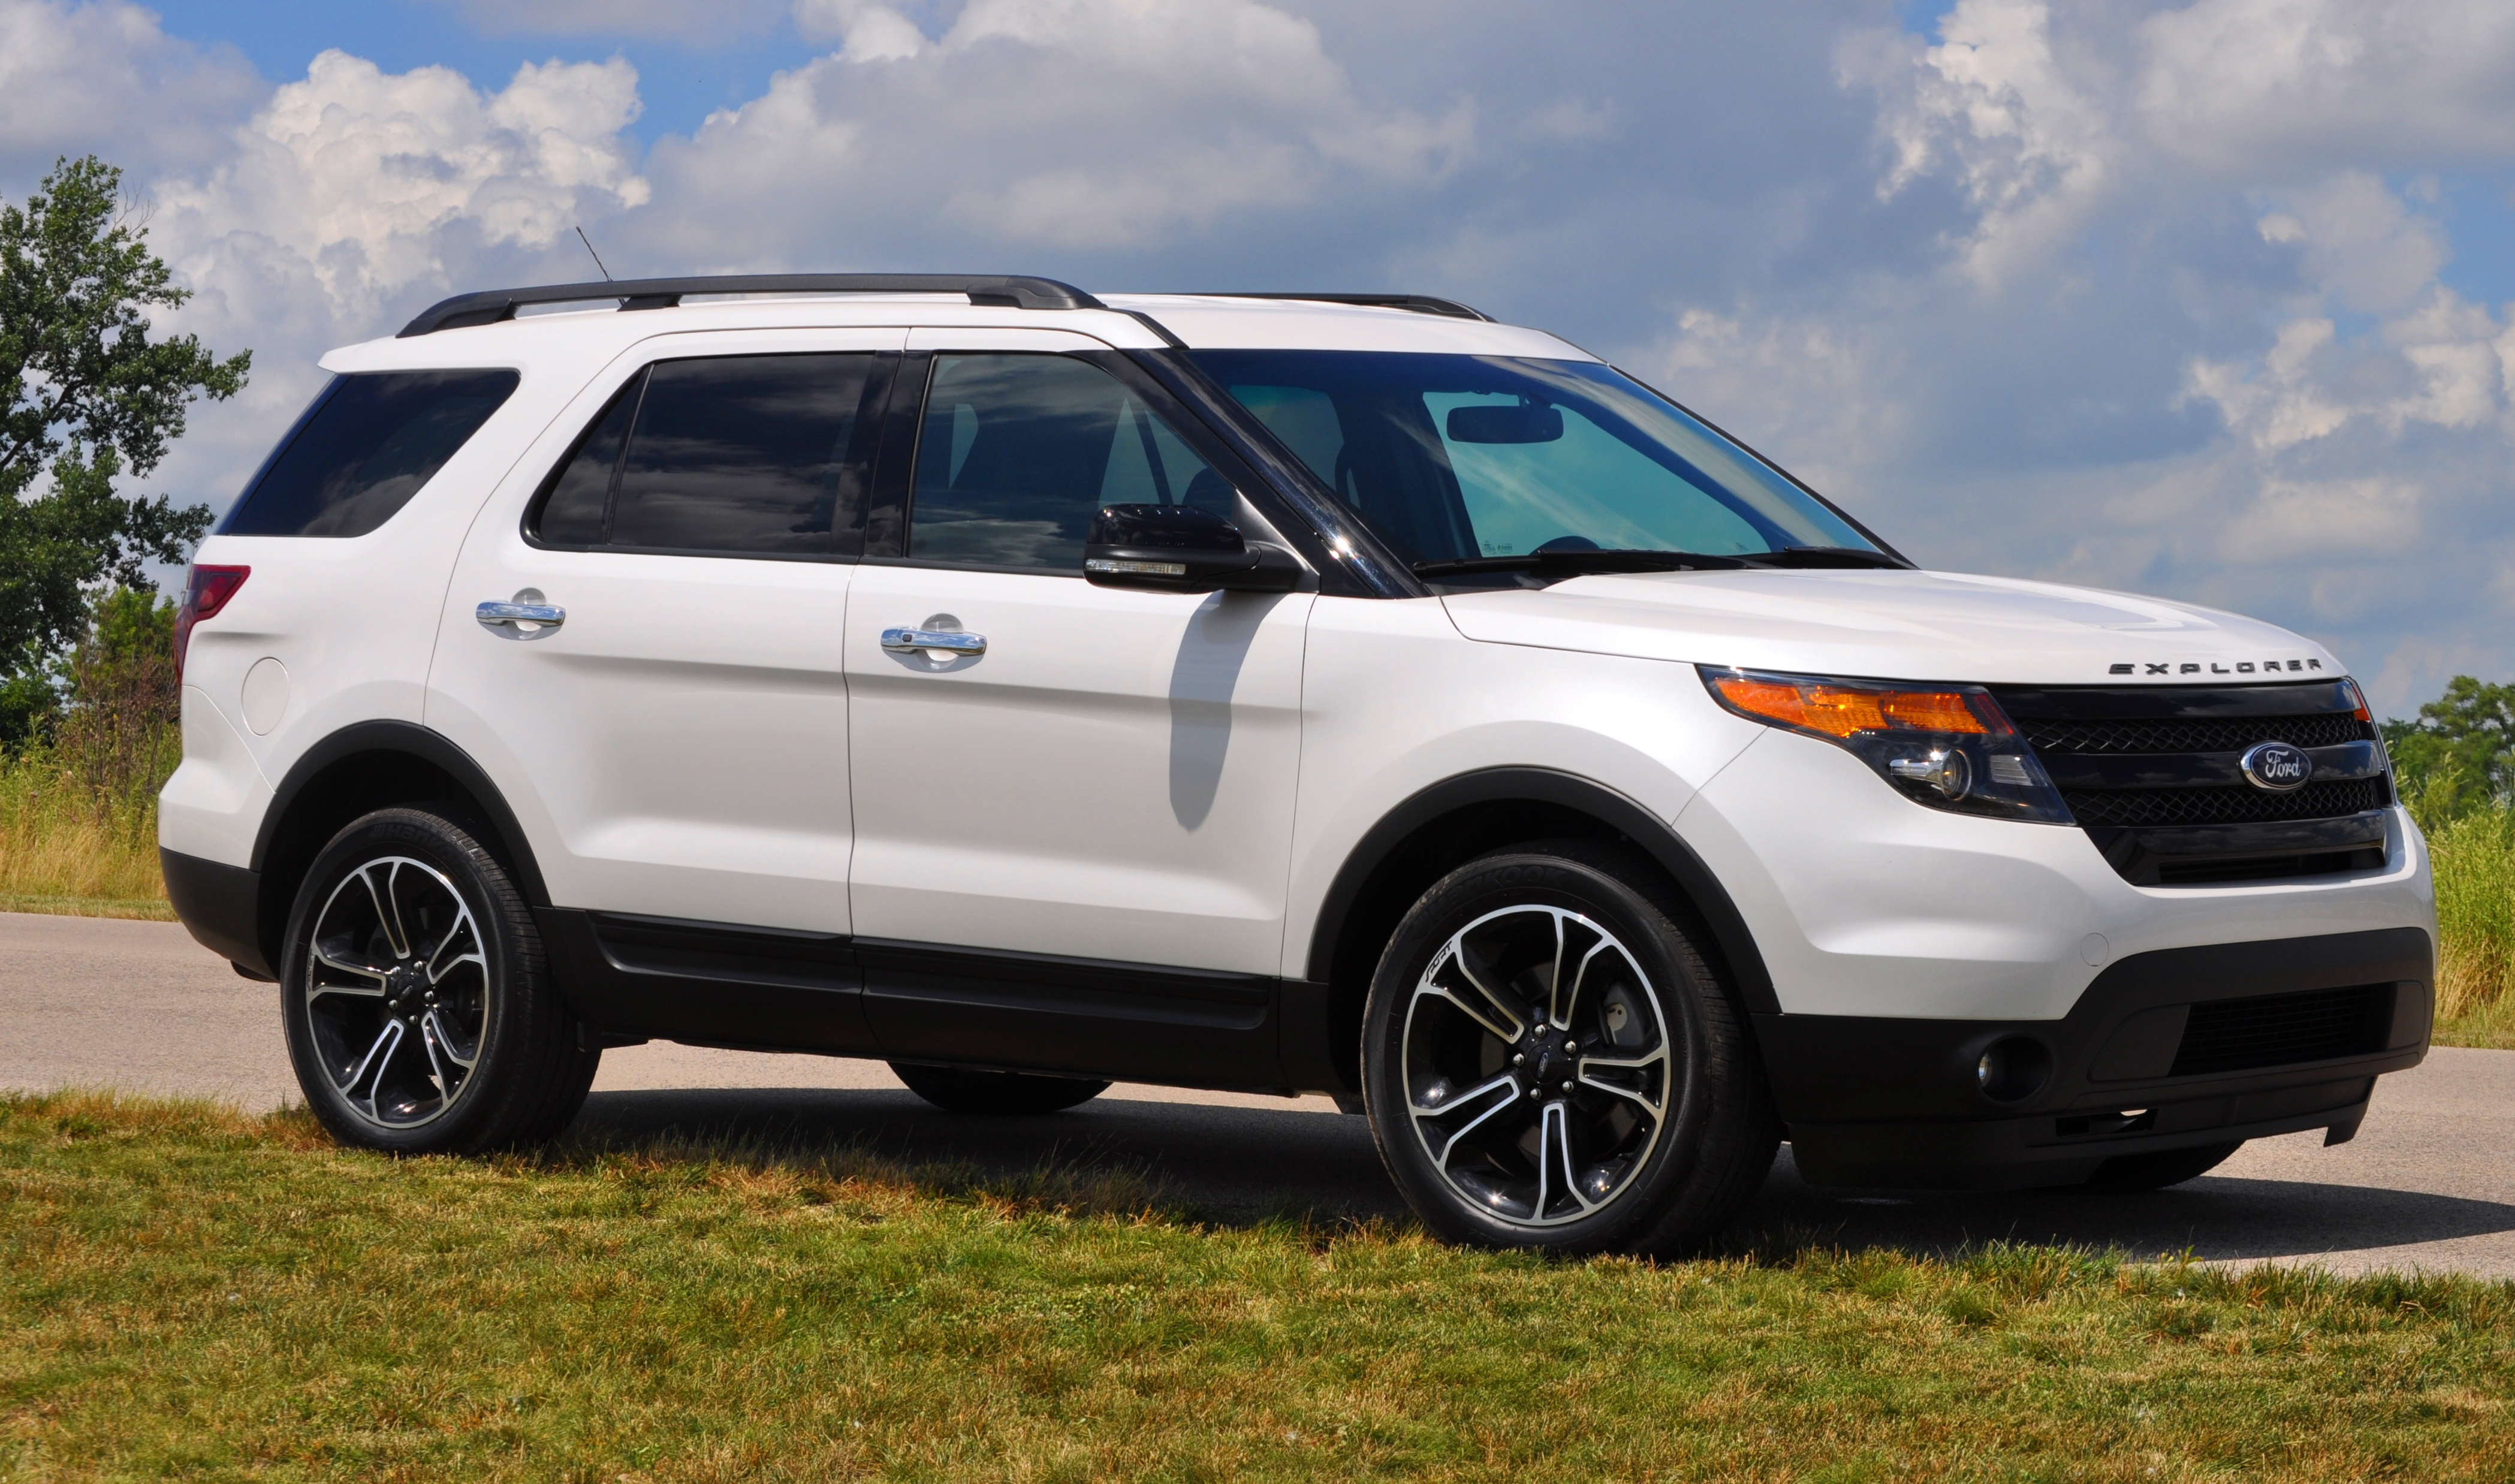 2014 Ford Explorer Sport Review - Top Speed